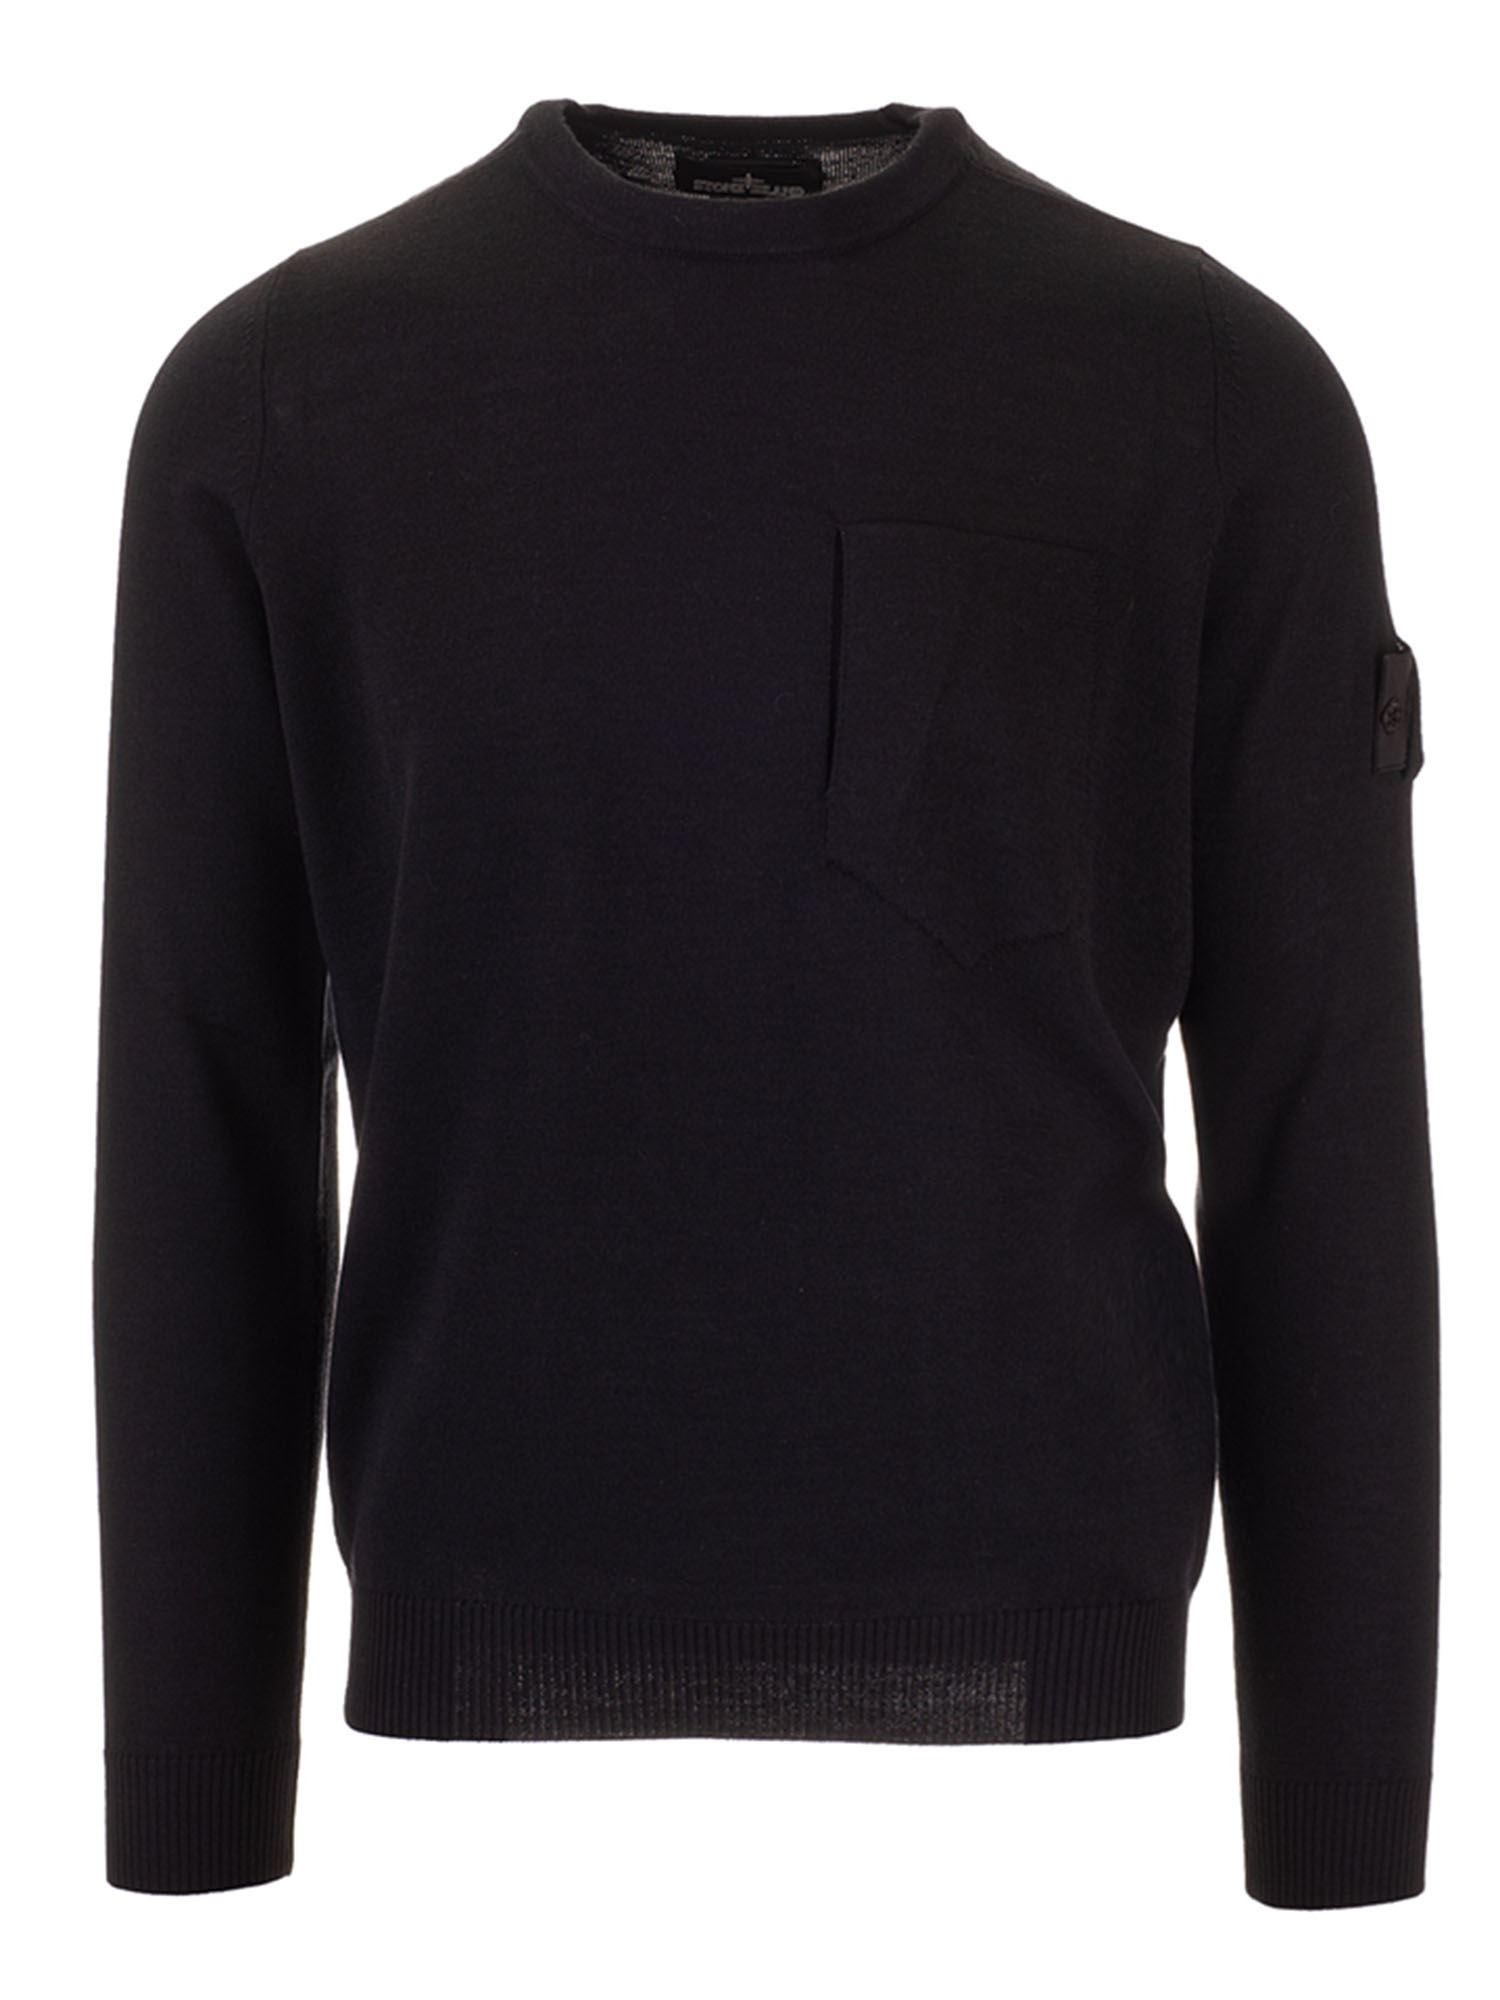 Stone Island PULLOVER CHEST POCKET IN BLACK